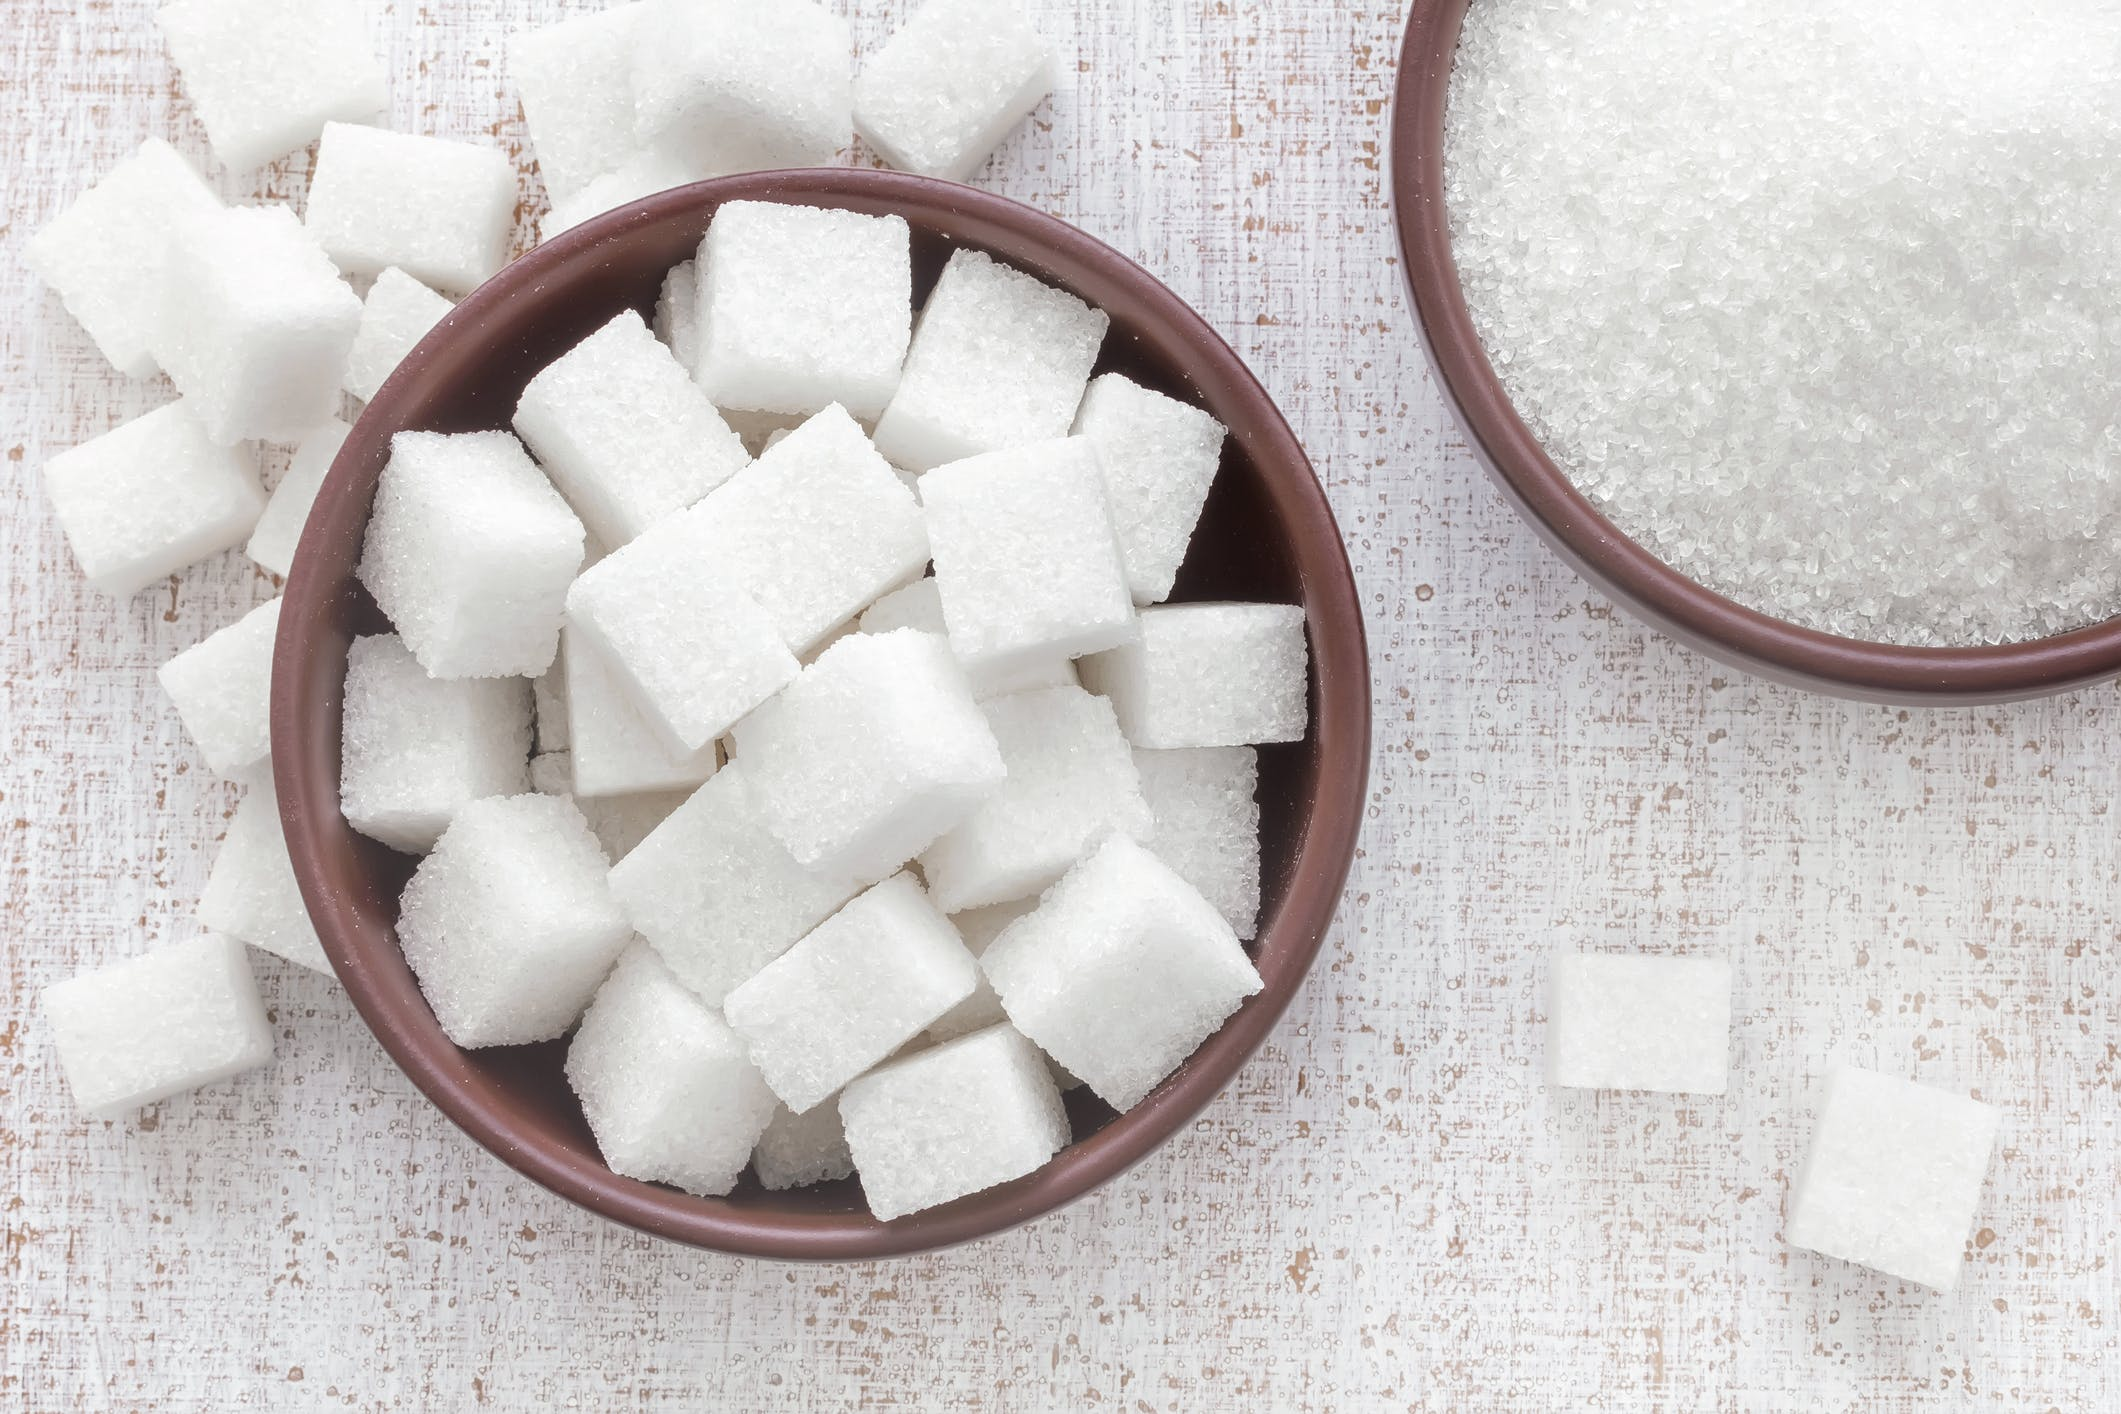 UK hospital campaign: Ditch sugar!